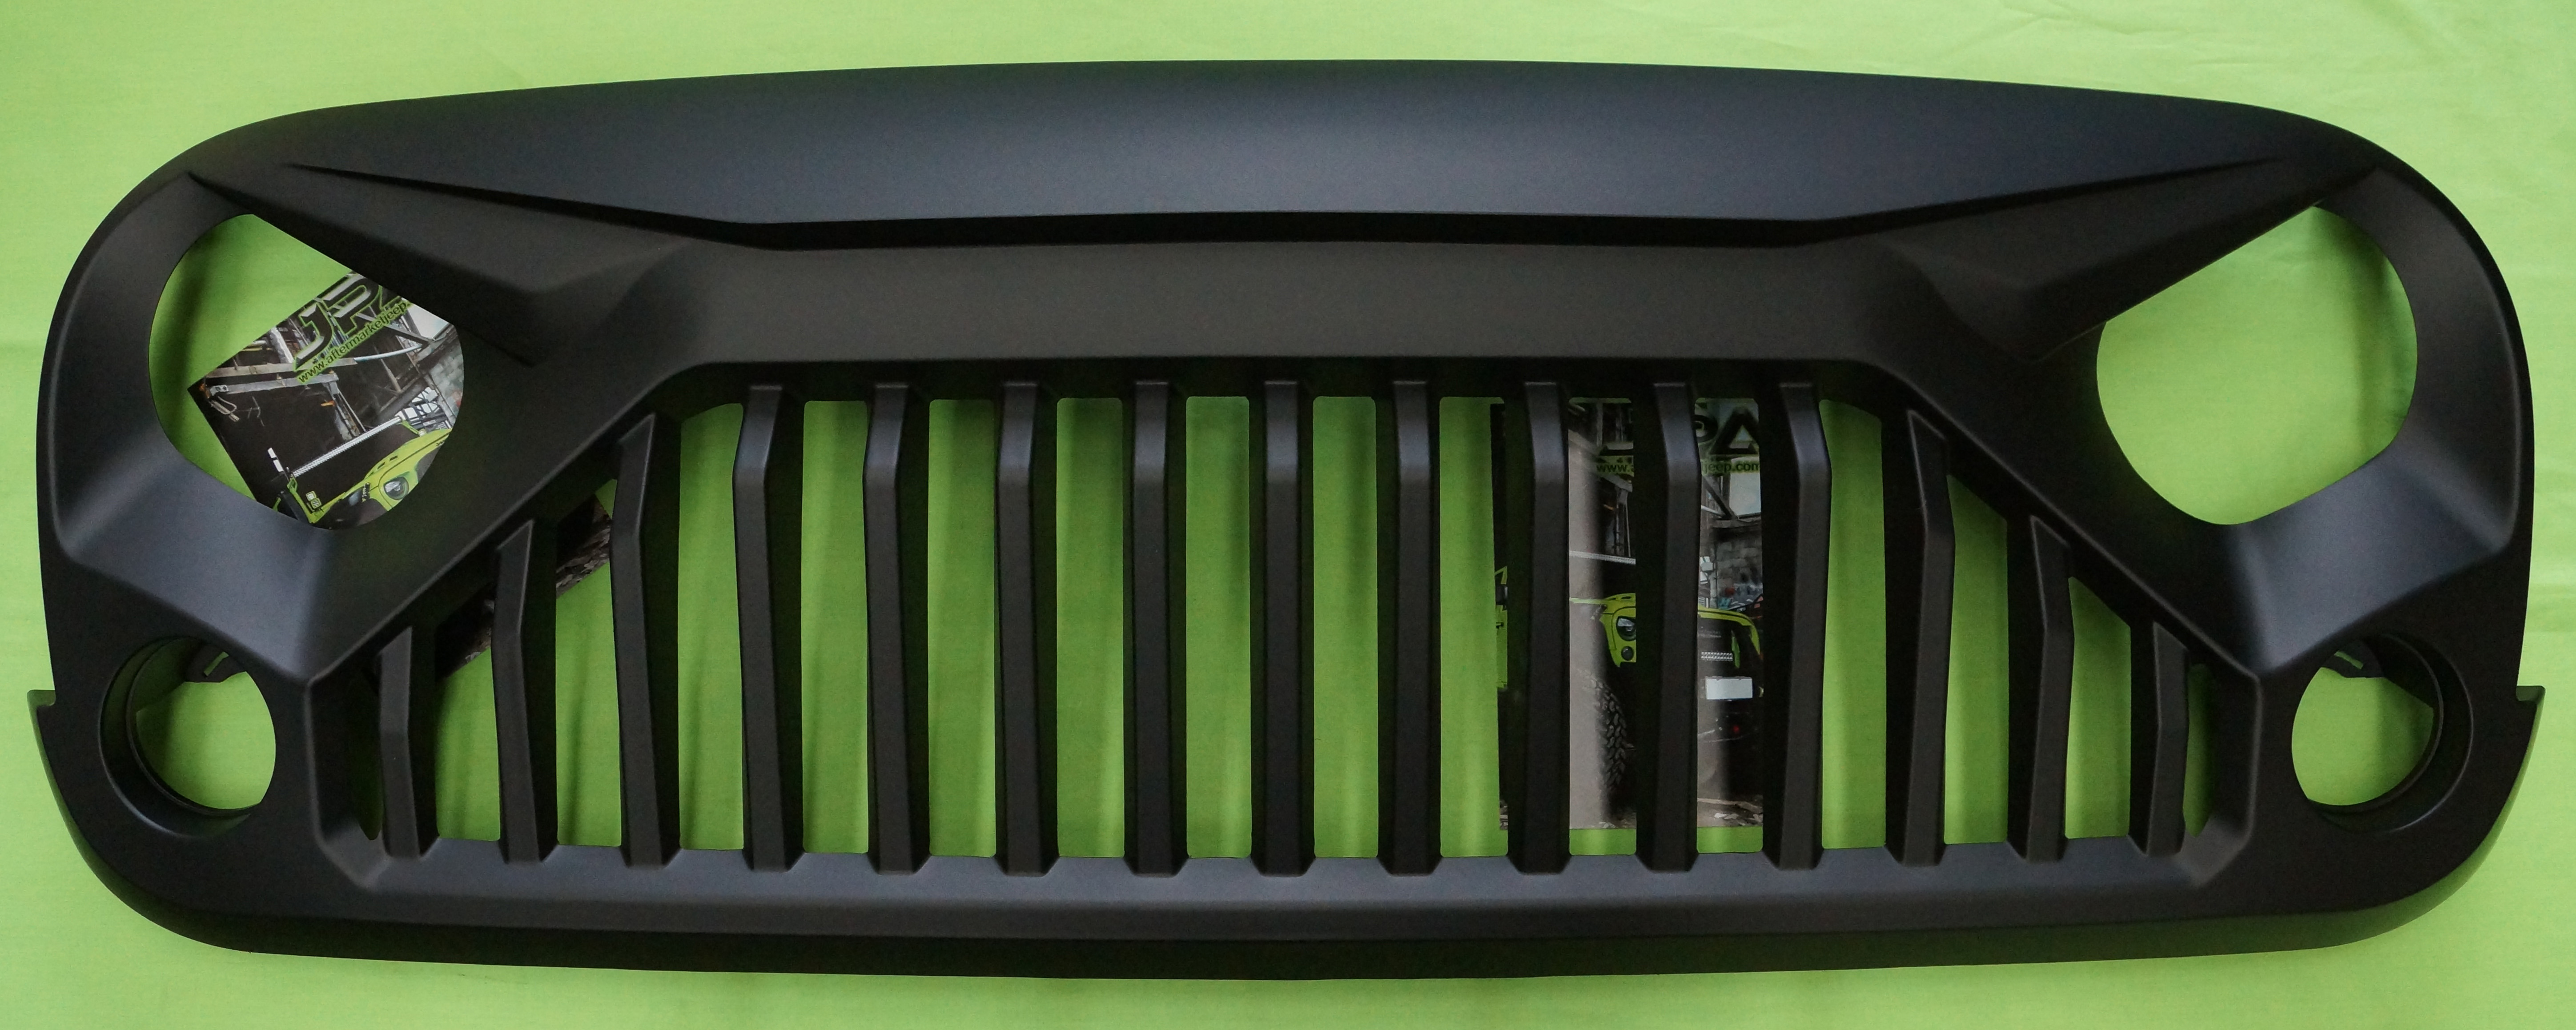 Jeep Wrangler Stormtrooper Angry Grill Grille For Jk